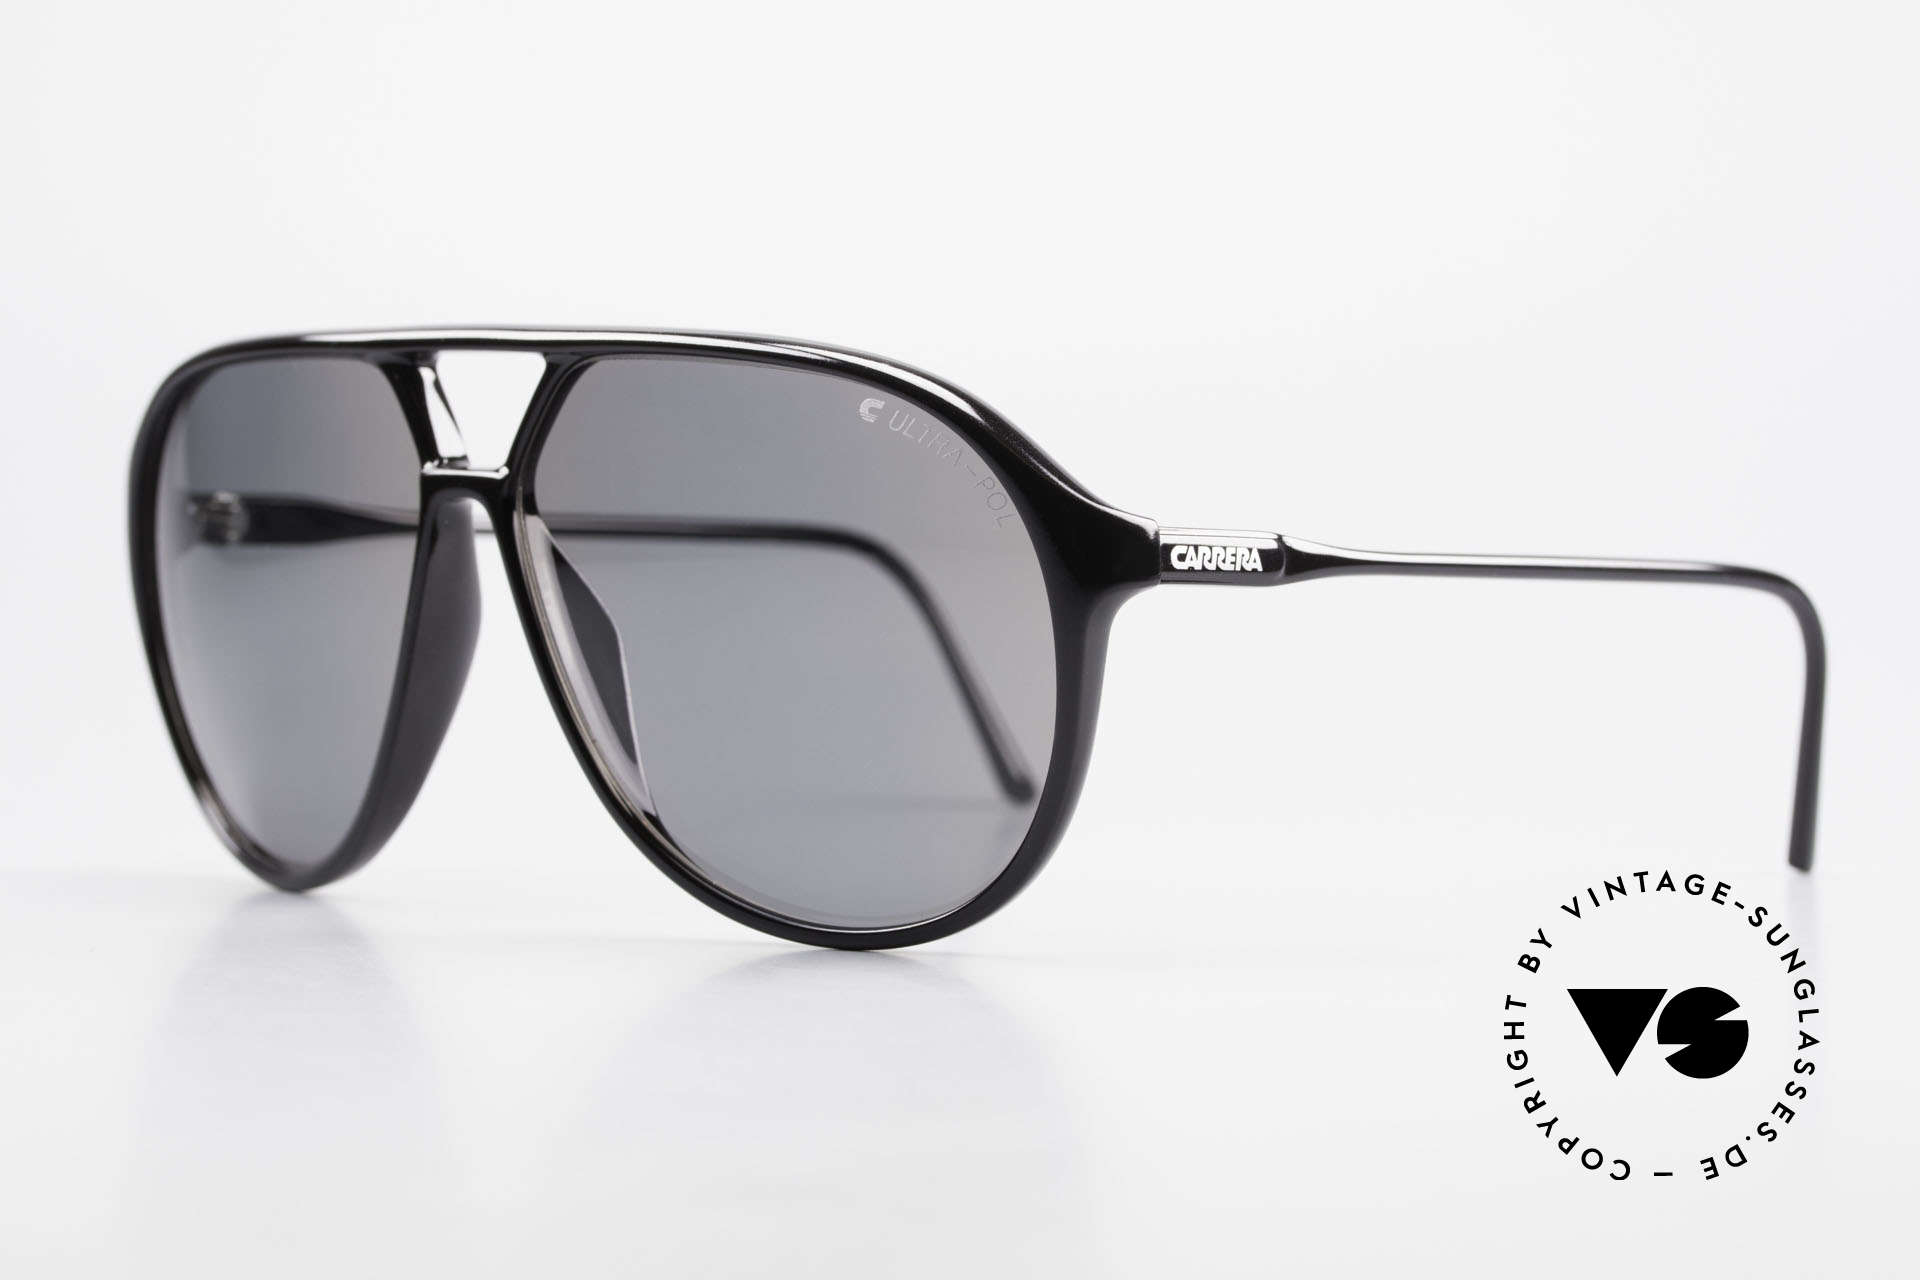 Carrera 5425 Polarized Sunglasses 80's 90's, sporty and functional design as quality characteristic, Made for Men